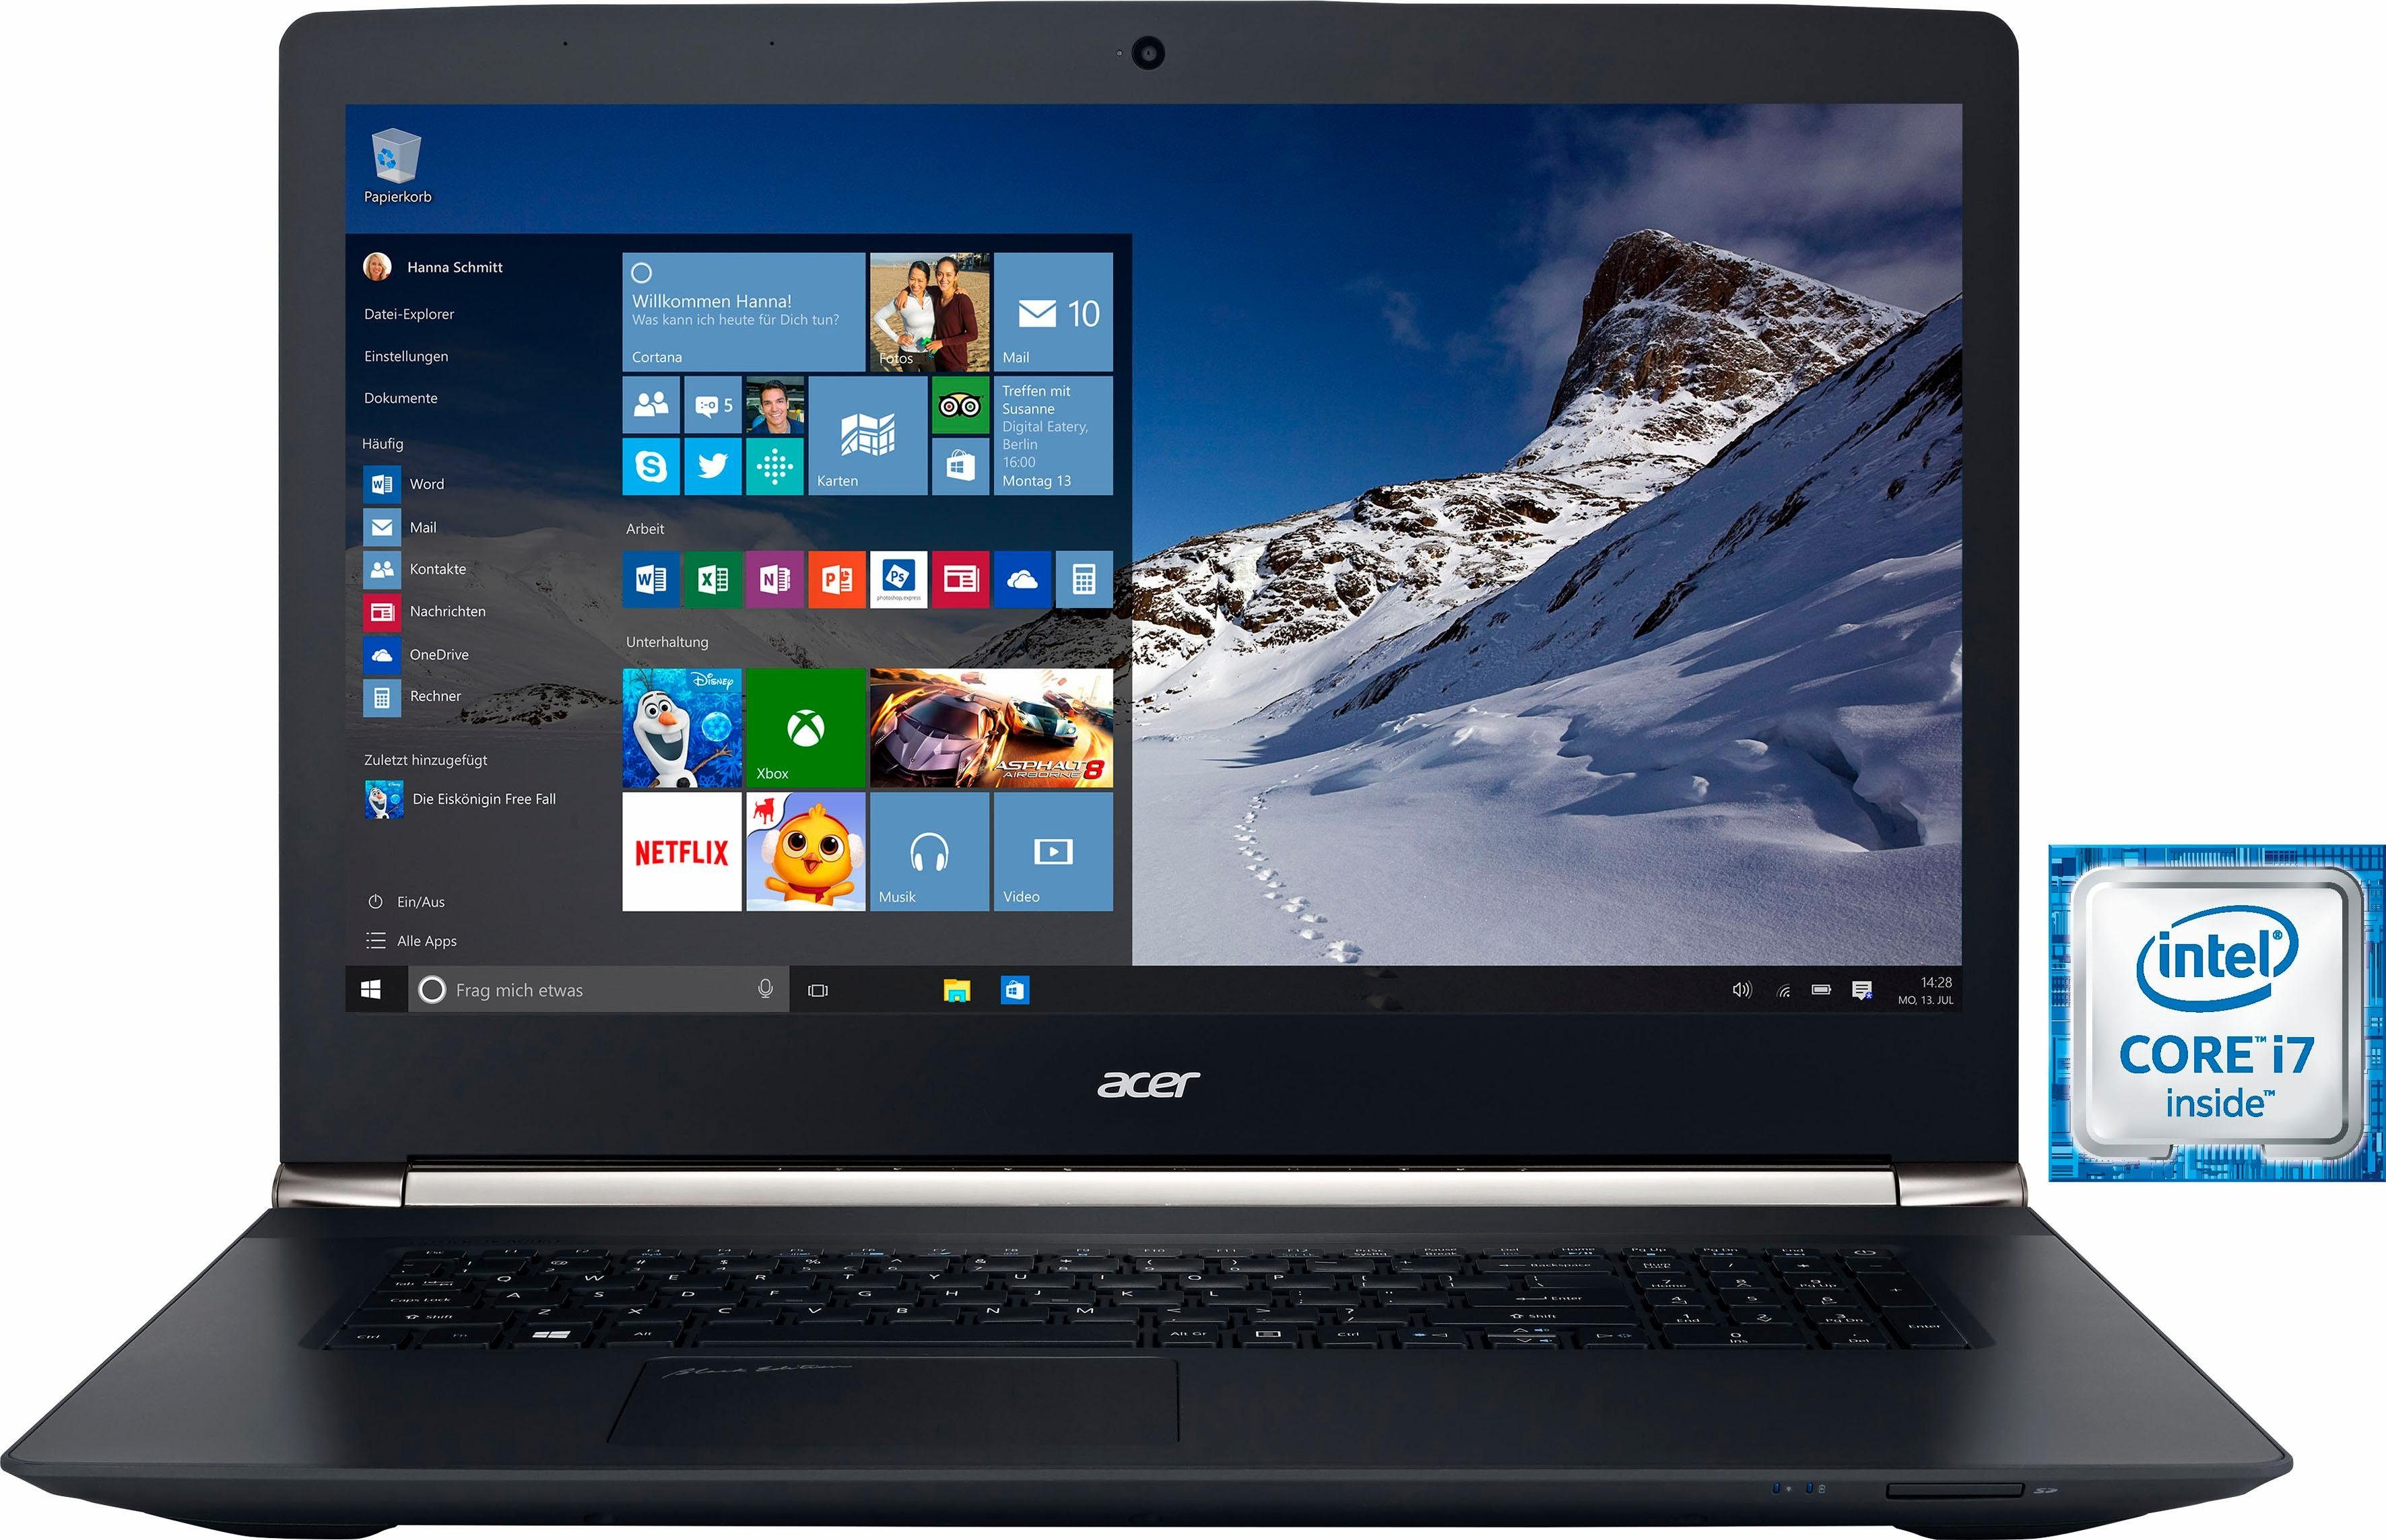 Acer VN7-792G-74UG Notebook, Intel® Core™ i7, 43,9 cm (17,3 Zoll), 1256 GB Speicher